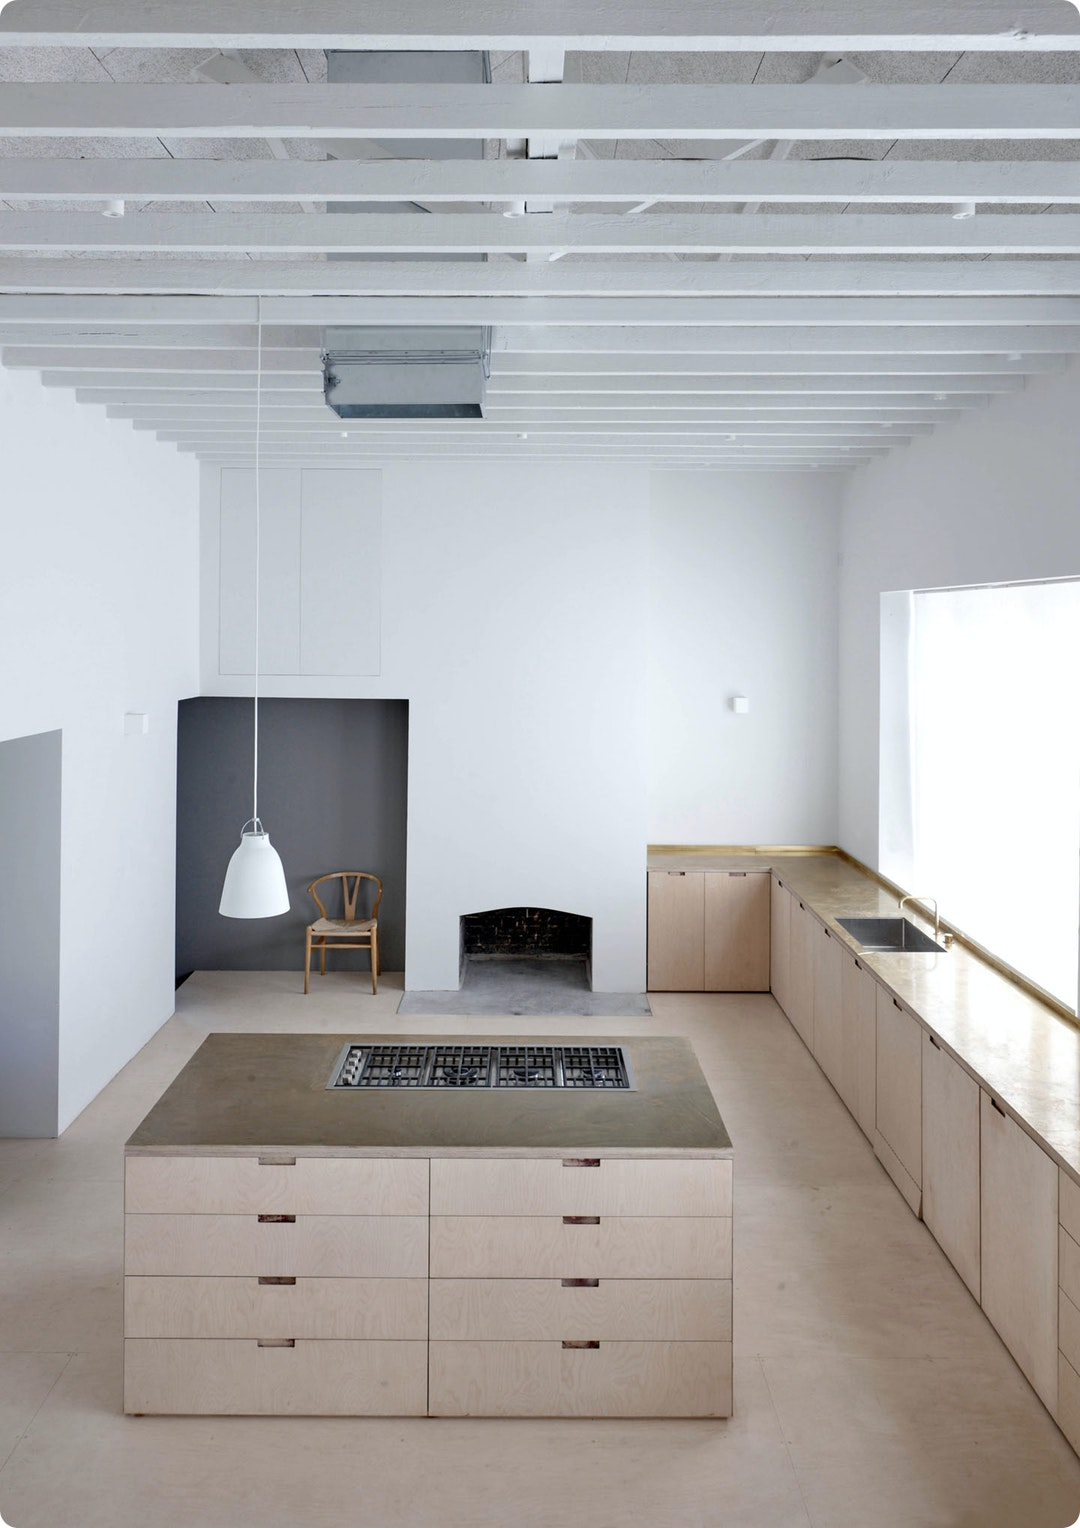 Merrydown House by McLaren Excell